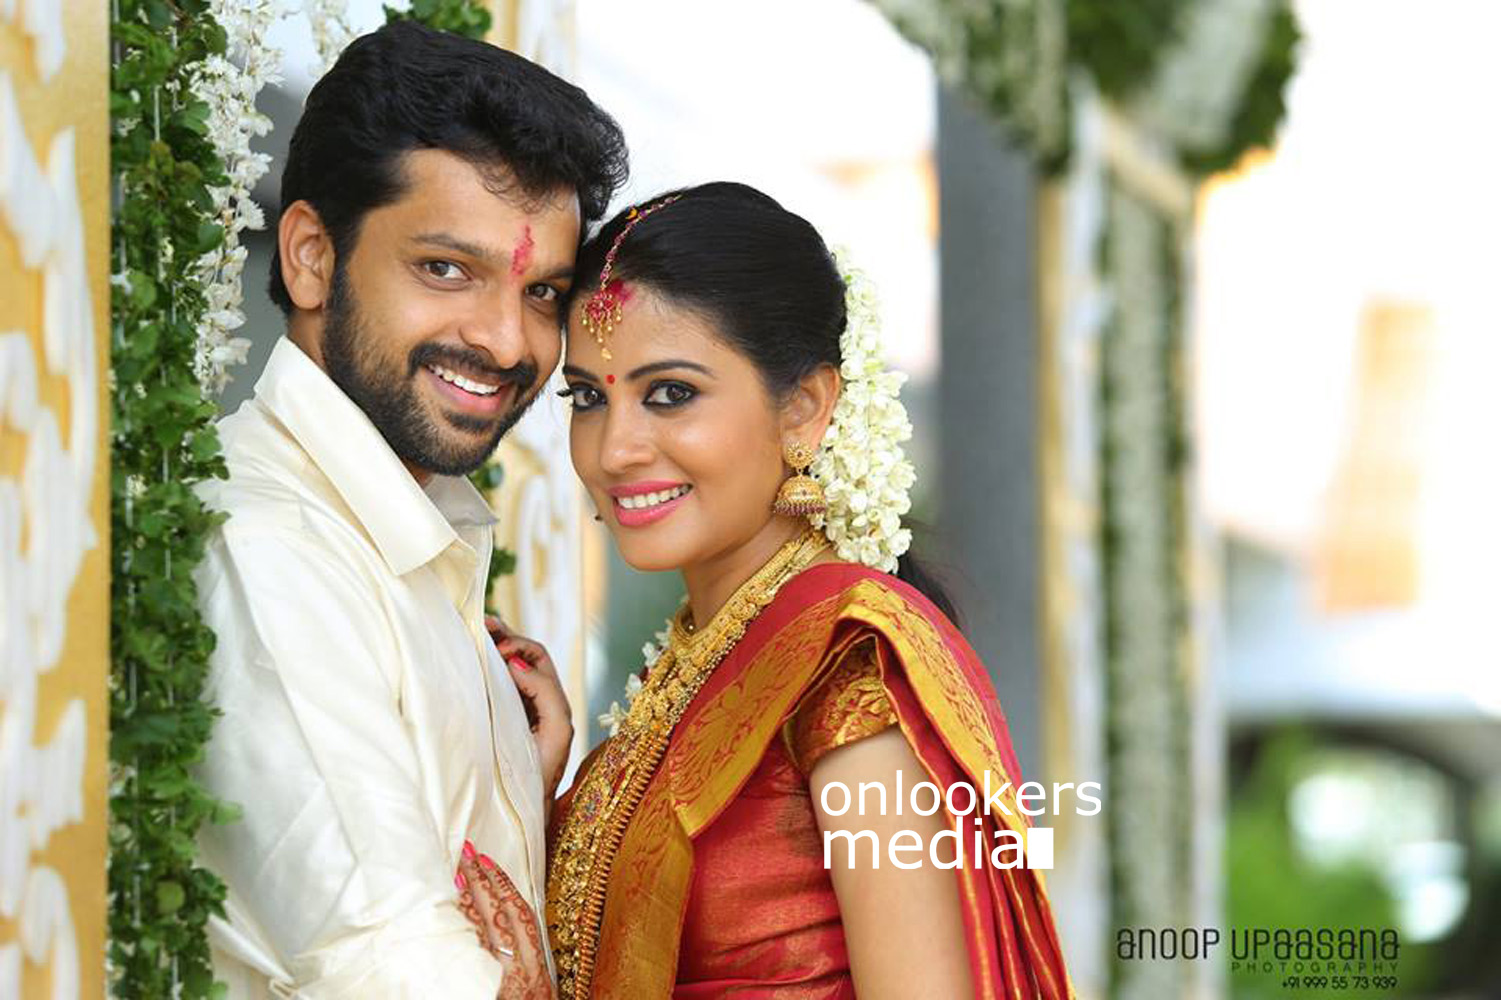 Shivada Nair, Murali Krishnan, Shivada Nair wedding stills, su su sudhi actress Shivada Nair marriage stills photos, Shivada wedding reception